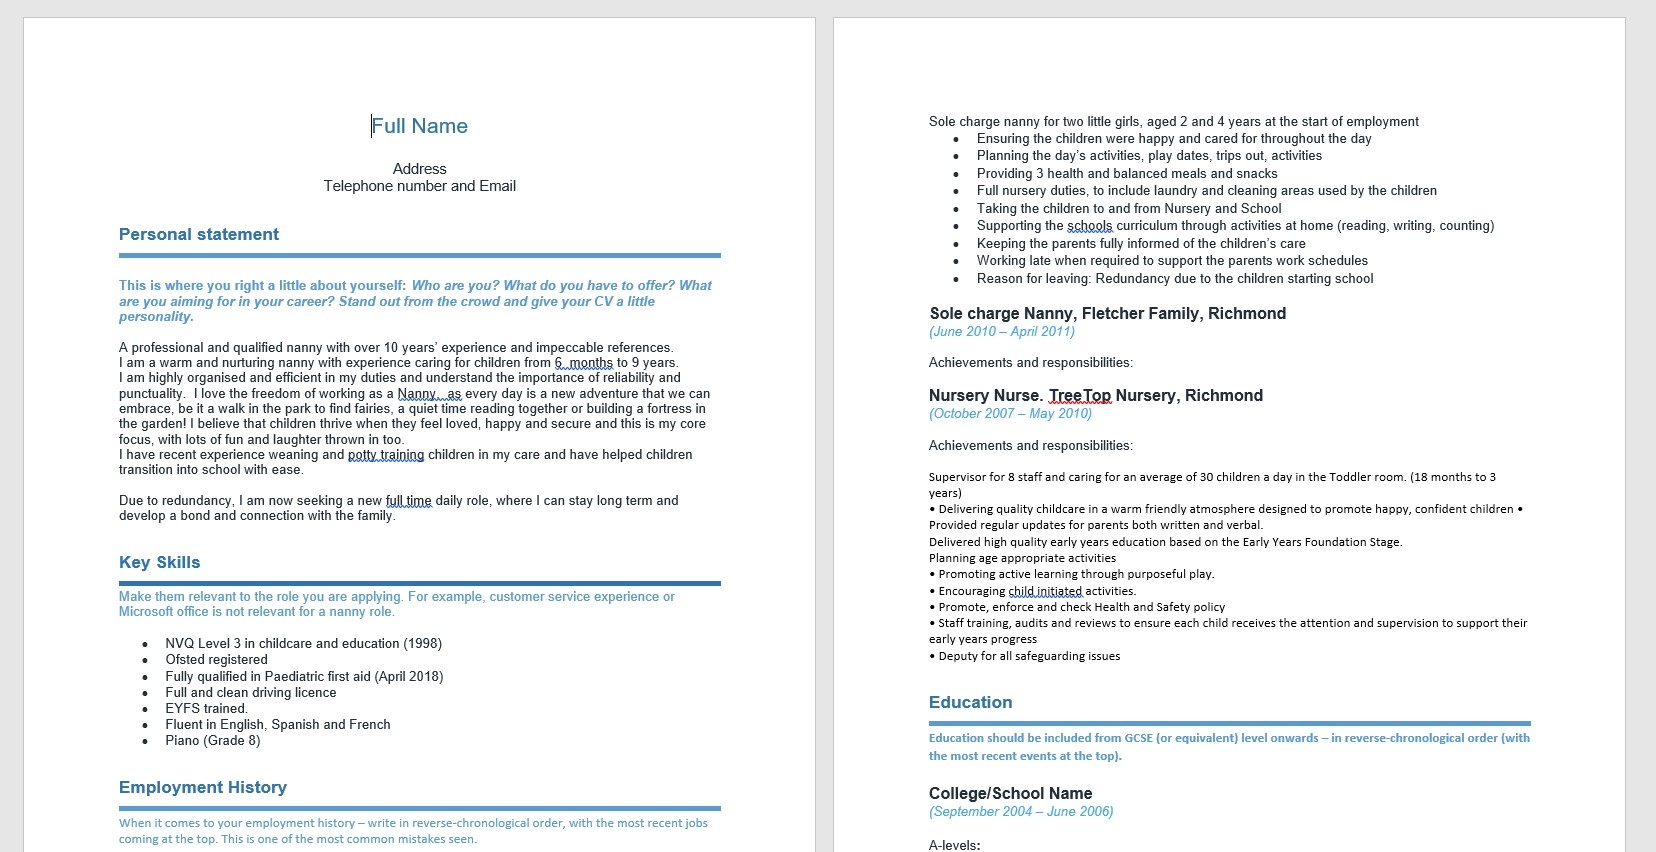 cv for nannies made easy our handy nanny template absolute childcare professional resume Resume Professional Nanny Resume Templates